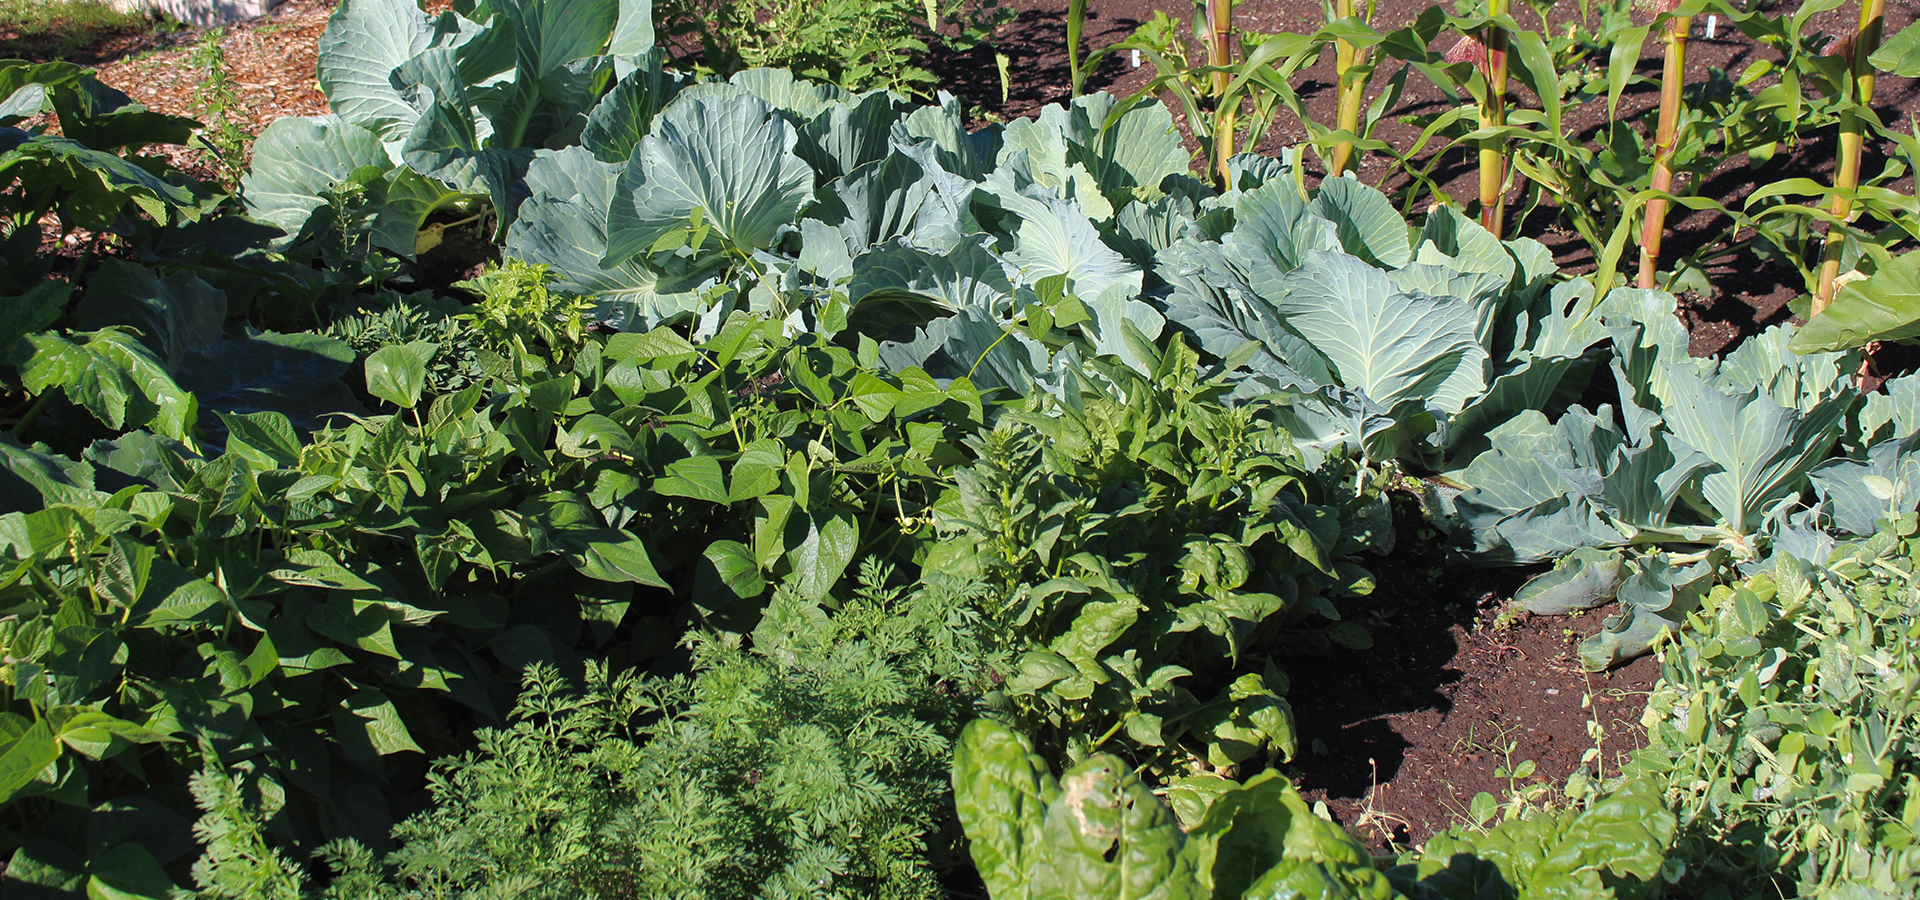 Hollinshead-Community-Garden-Leafy-Greens